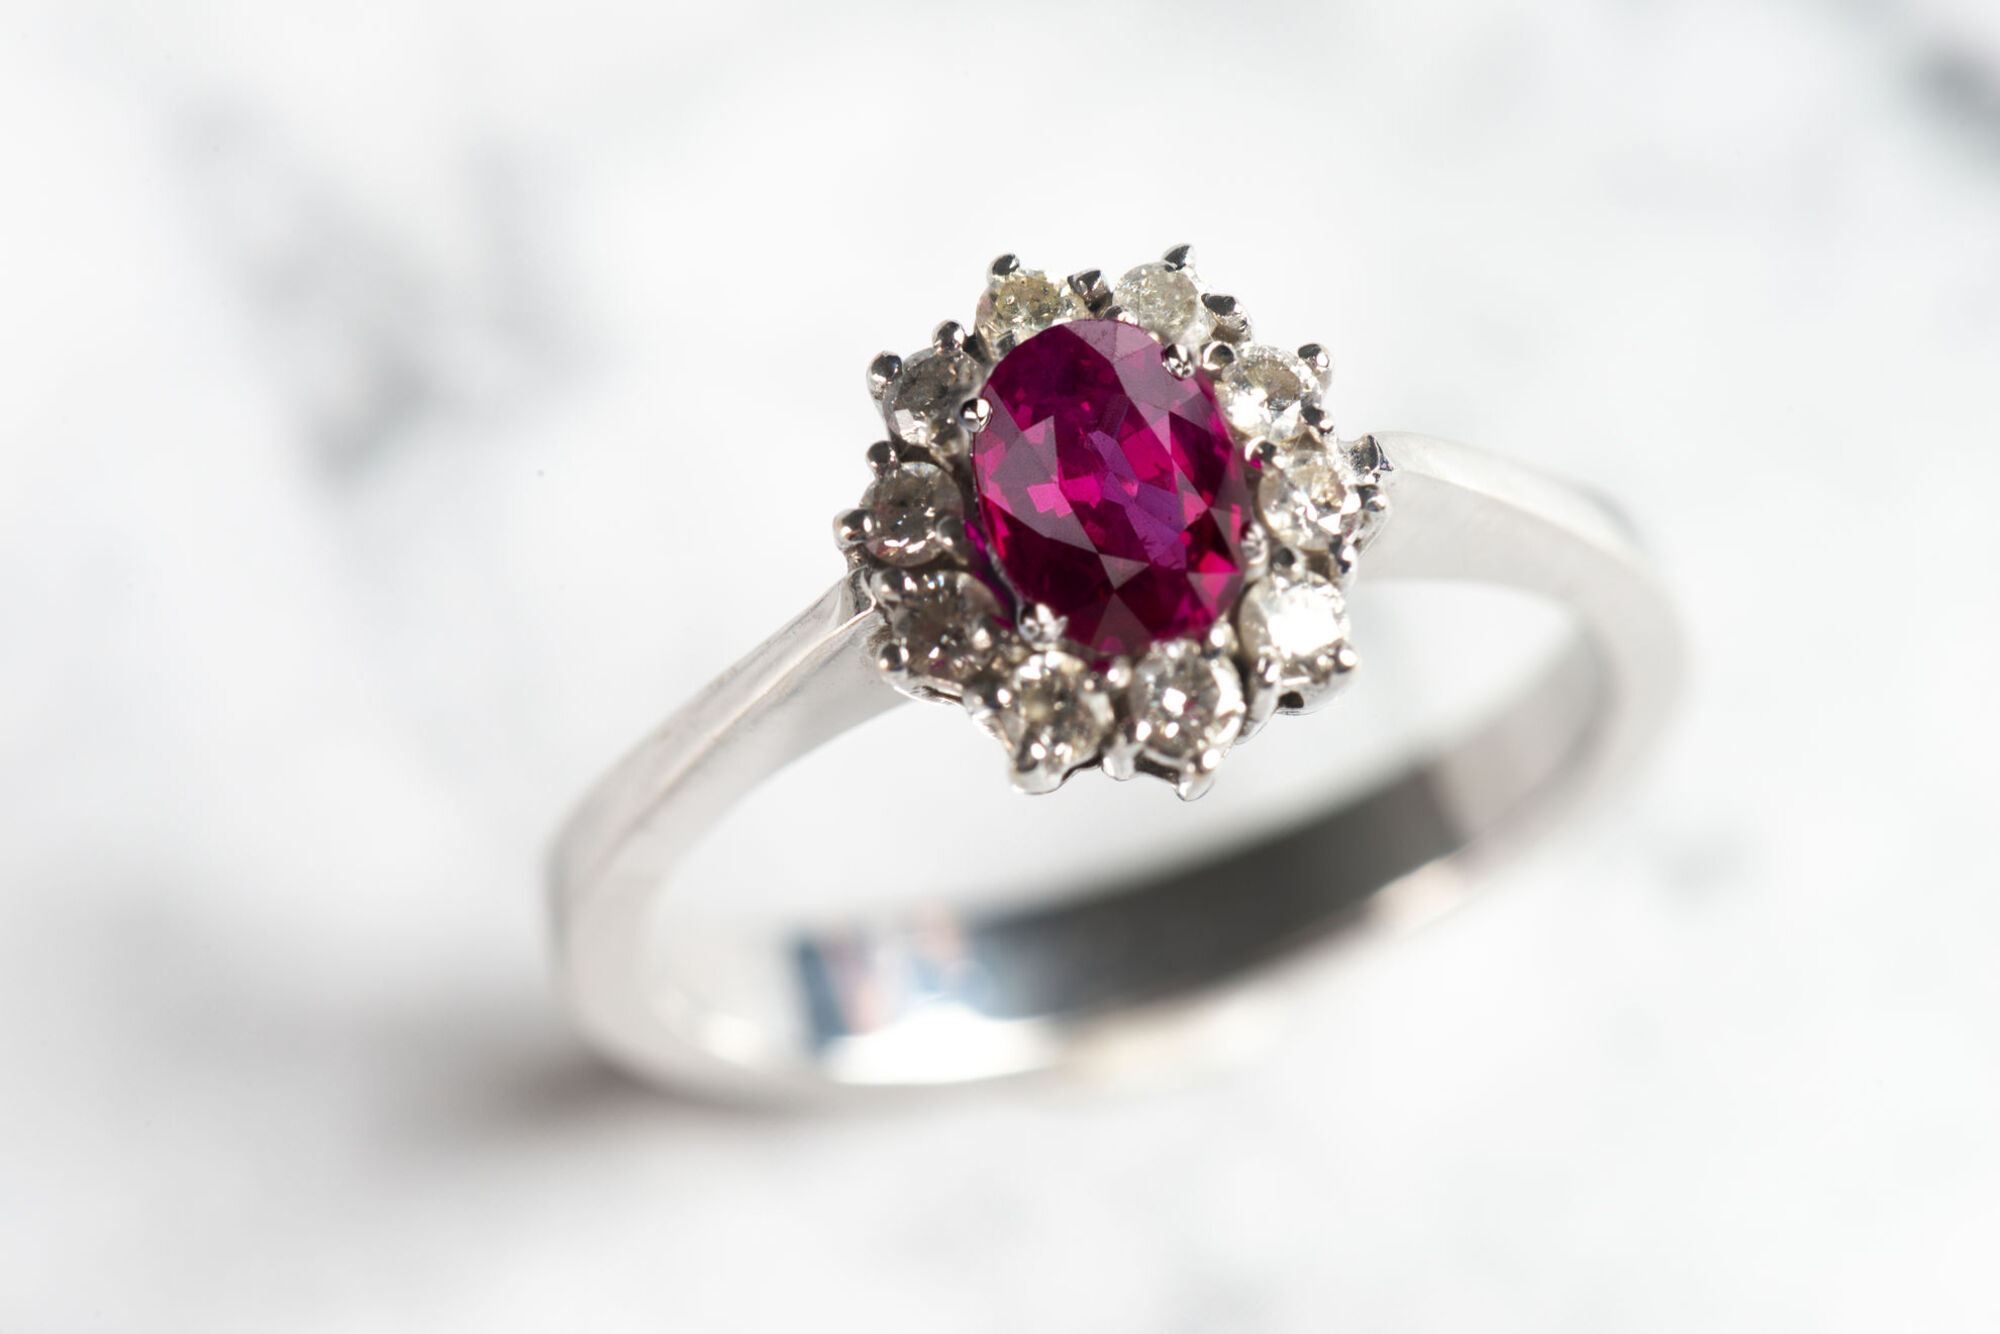 Ruby is the July birthstone